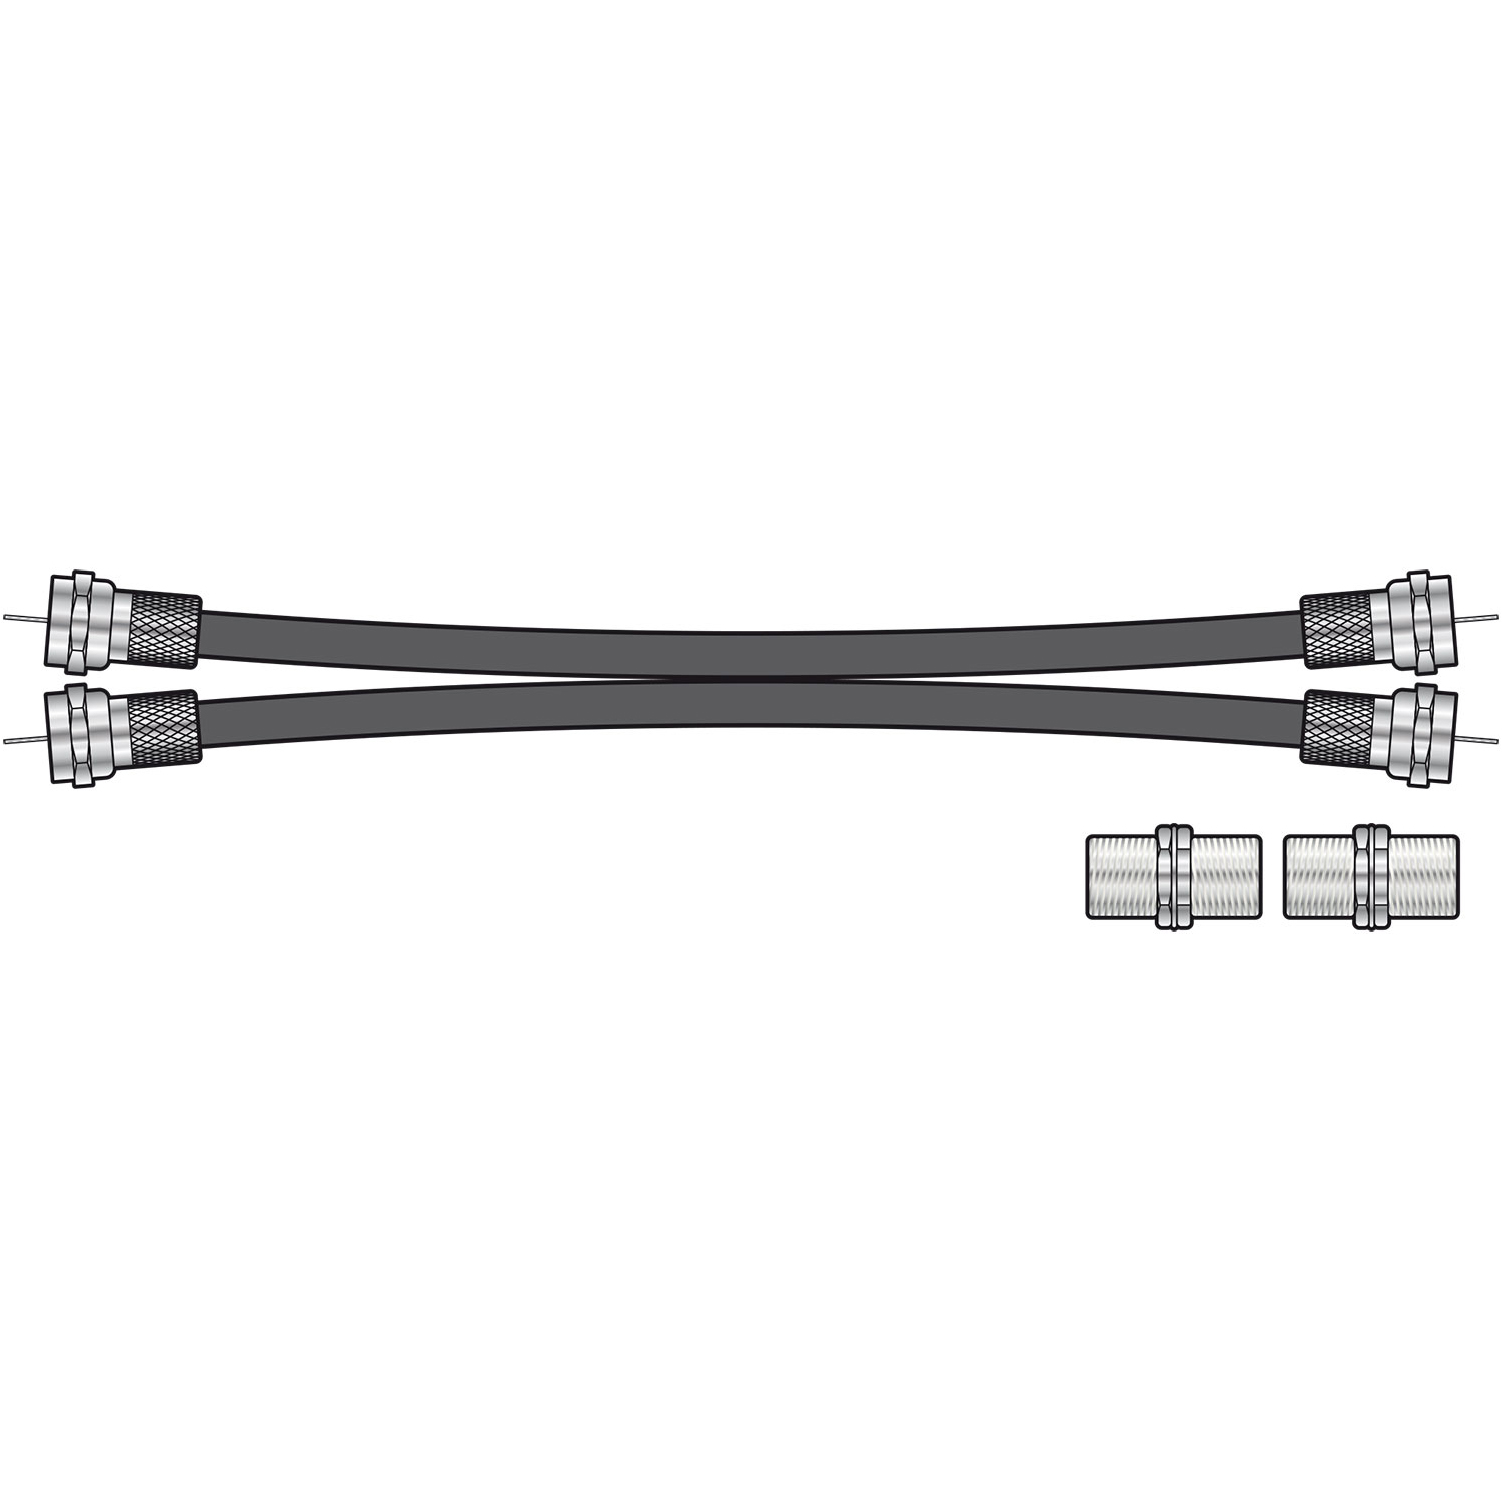 Image of F PLUG TWIN EXTENSION LEAD - 5 metres